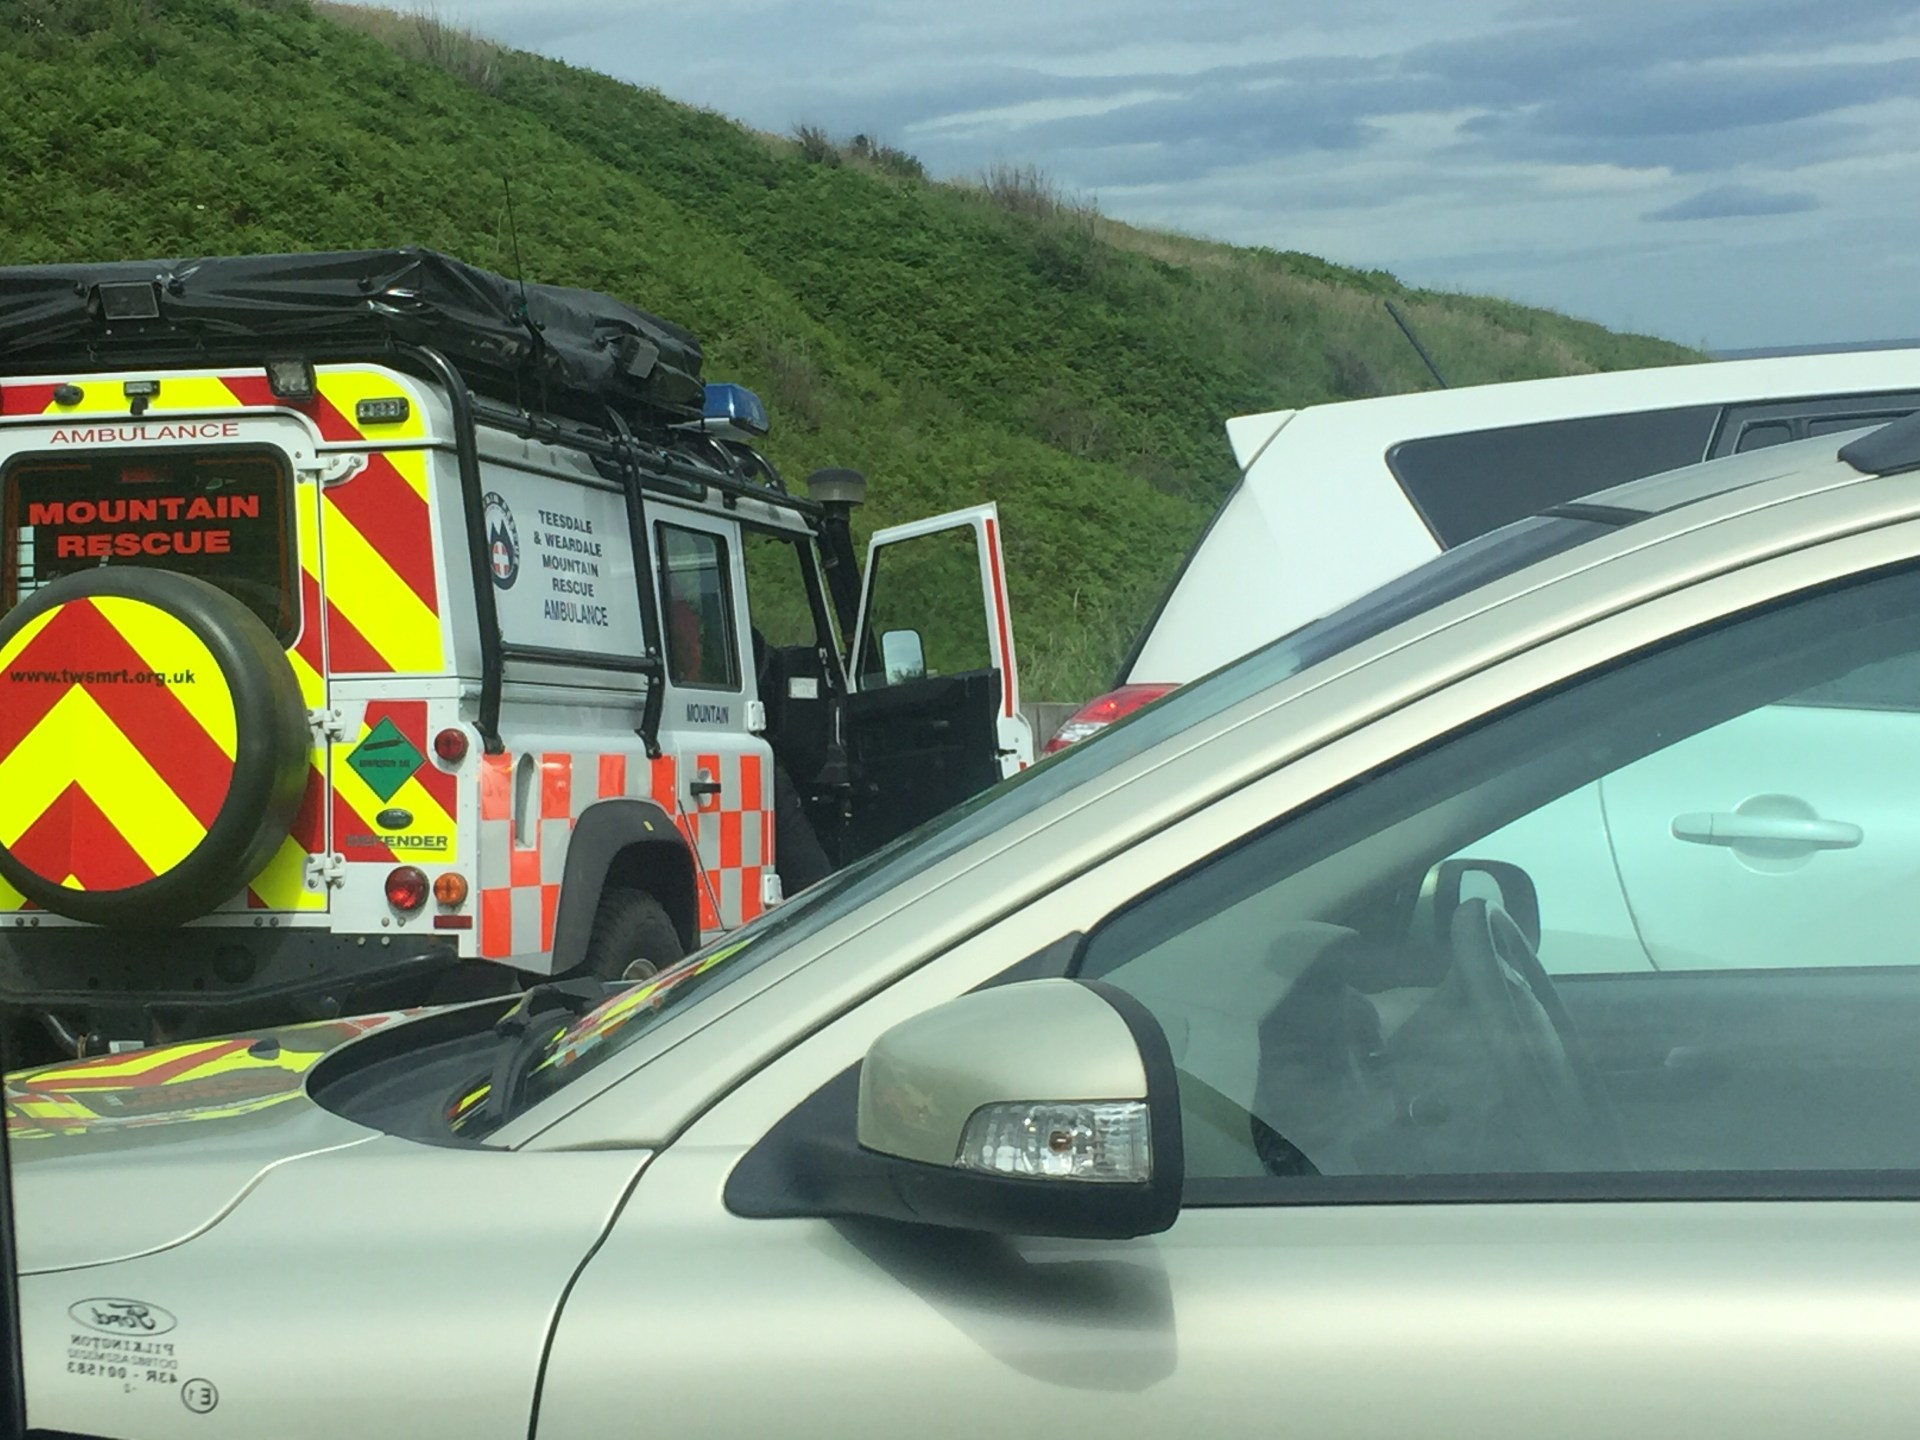 On going incident involving coastguard, police and mountain rescue In Horden 3